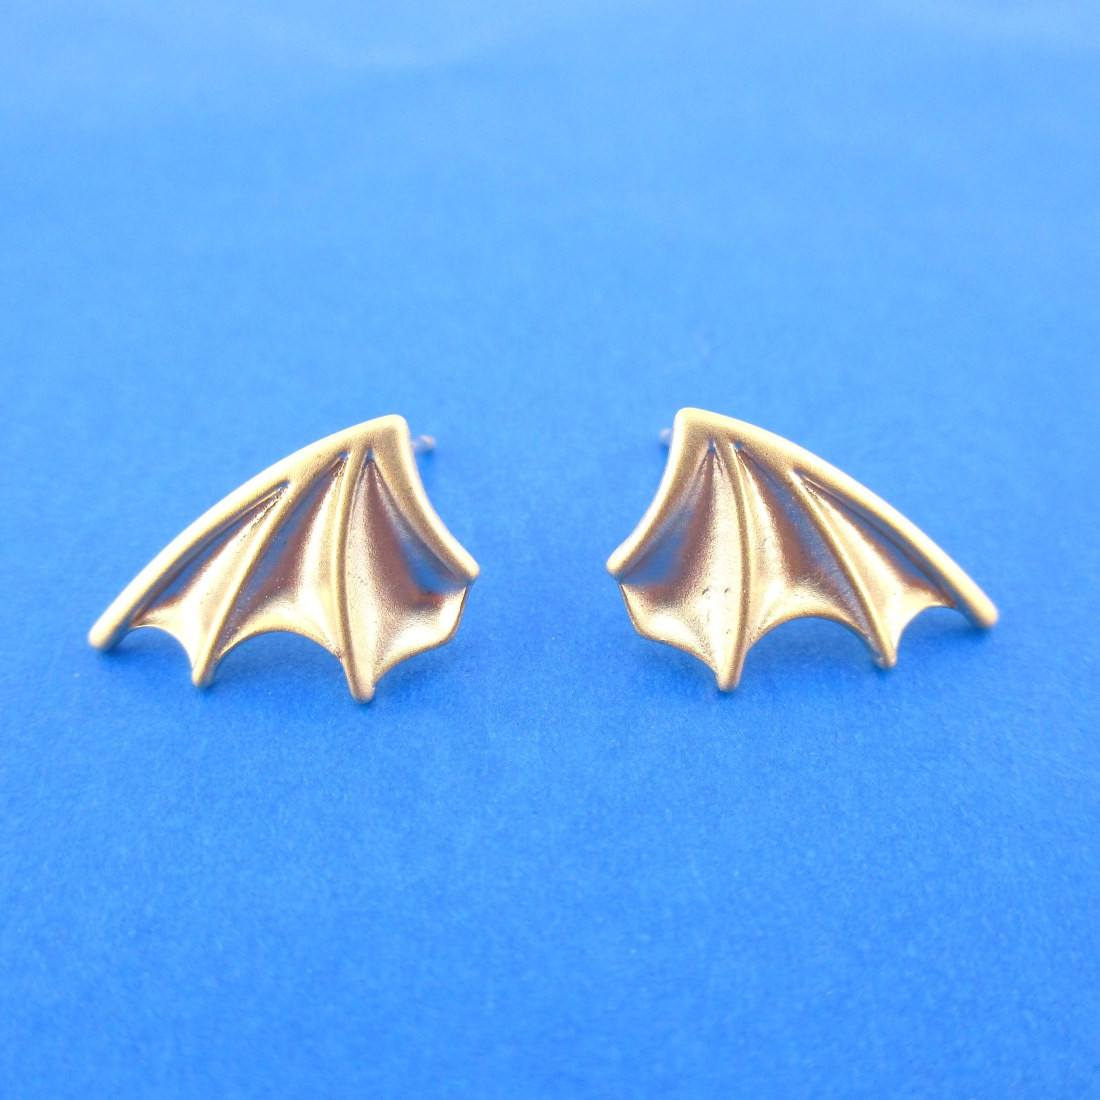 Detailed Bat Wings Shaped Stud Earrings in Gold